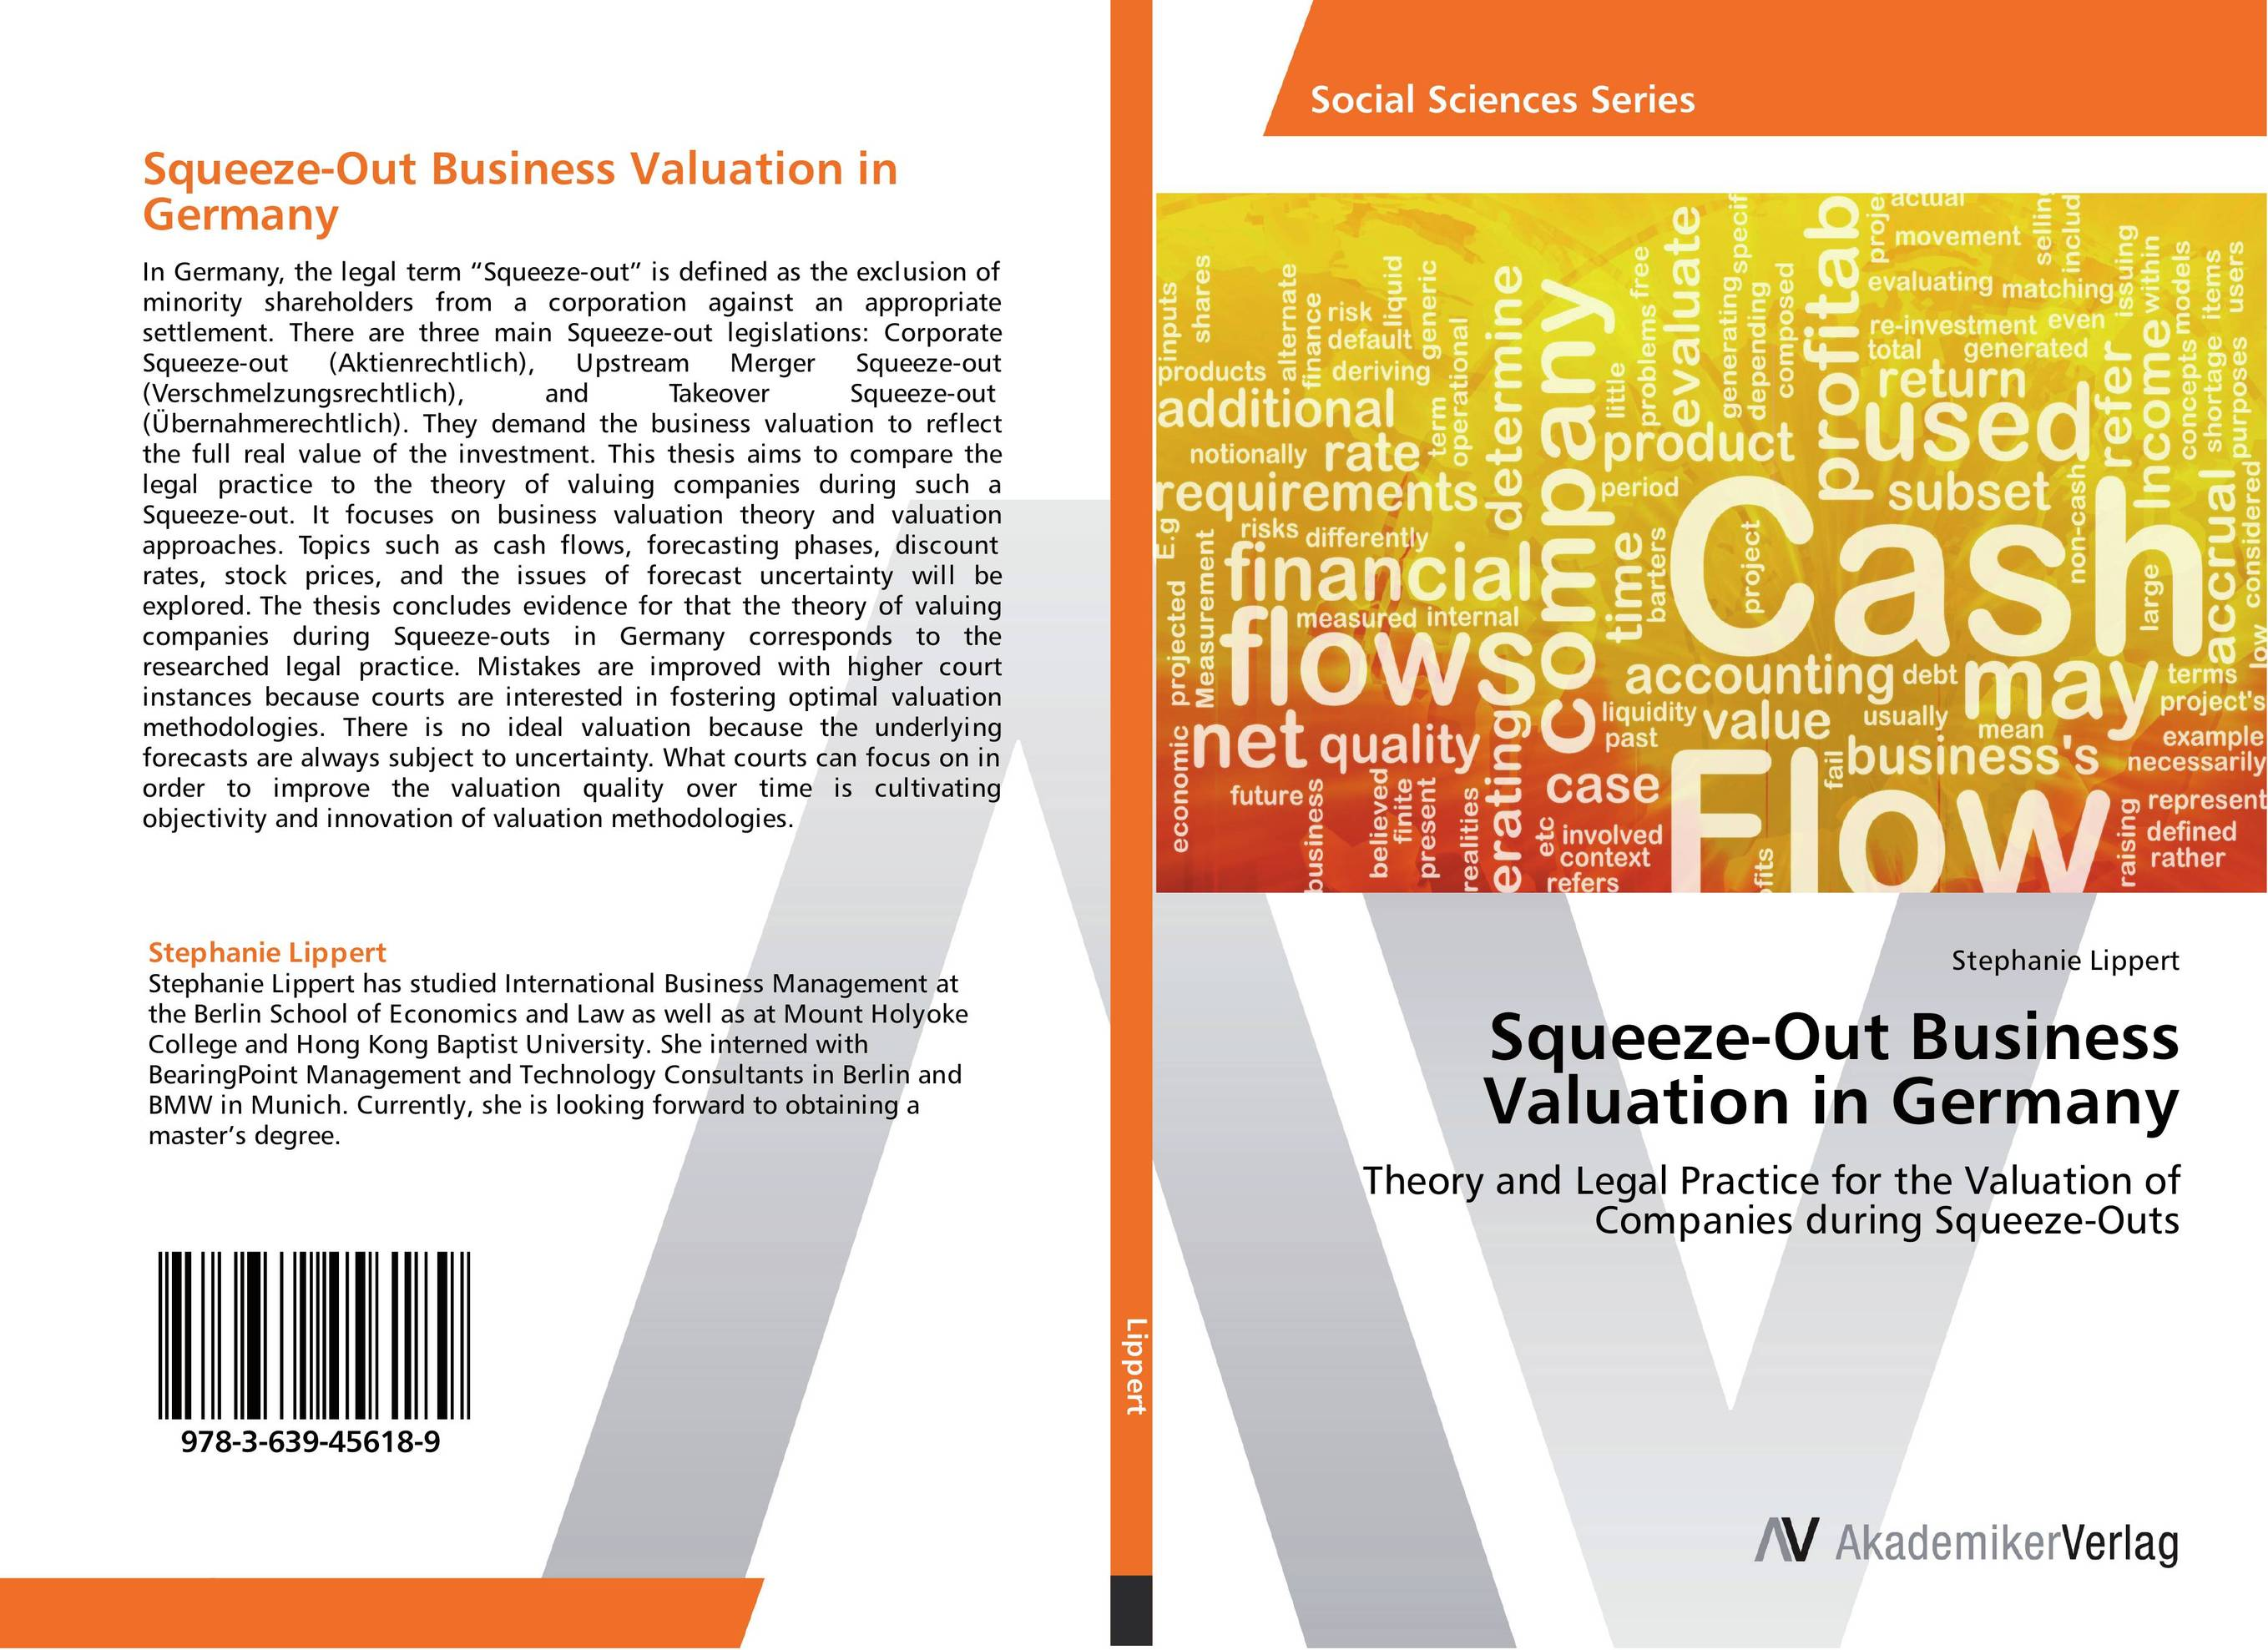 Squeeze-Out Business Valuation in Germany evaluation and legal theory